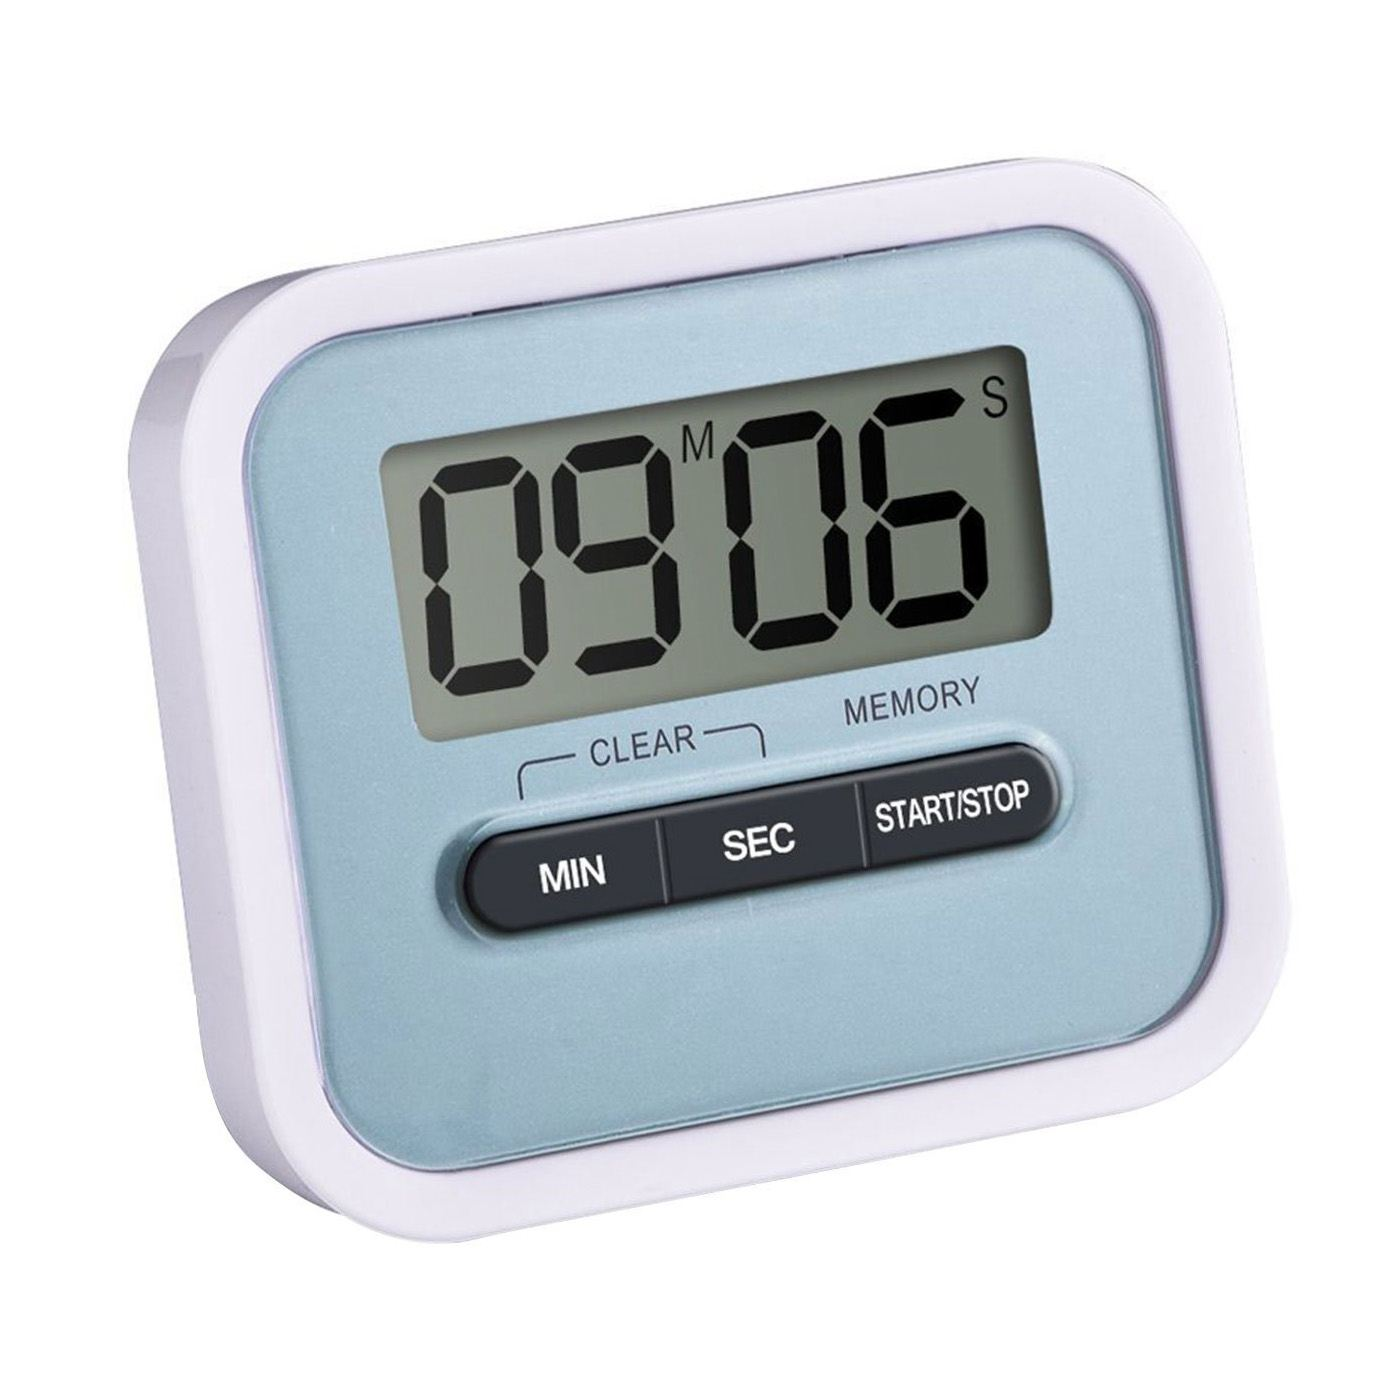 Portable Large Multifunction LCD Kitchen Cooking Timer Count Down Up ...